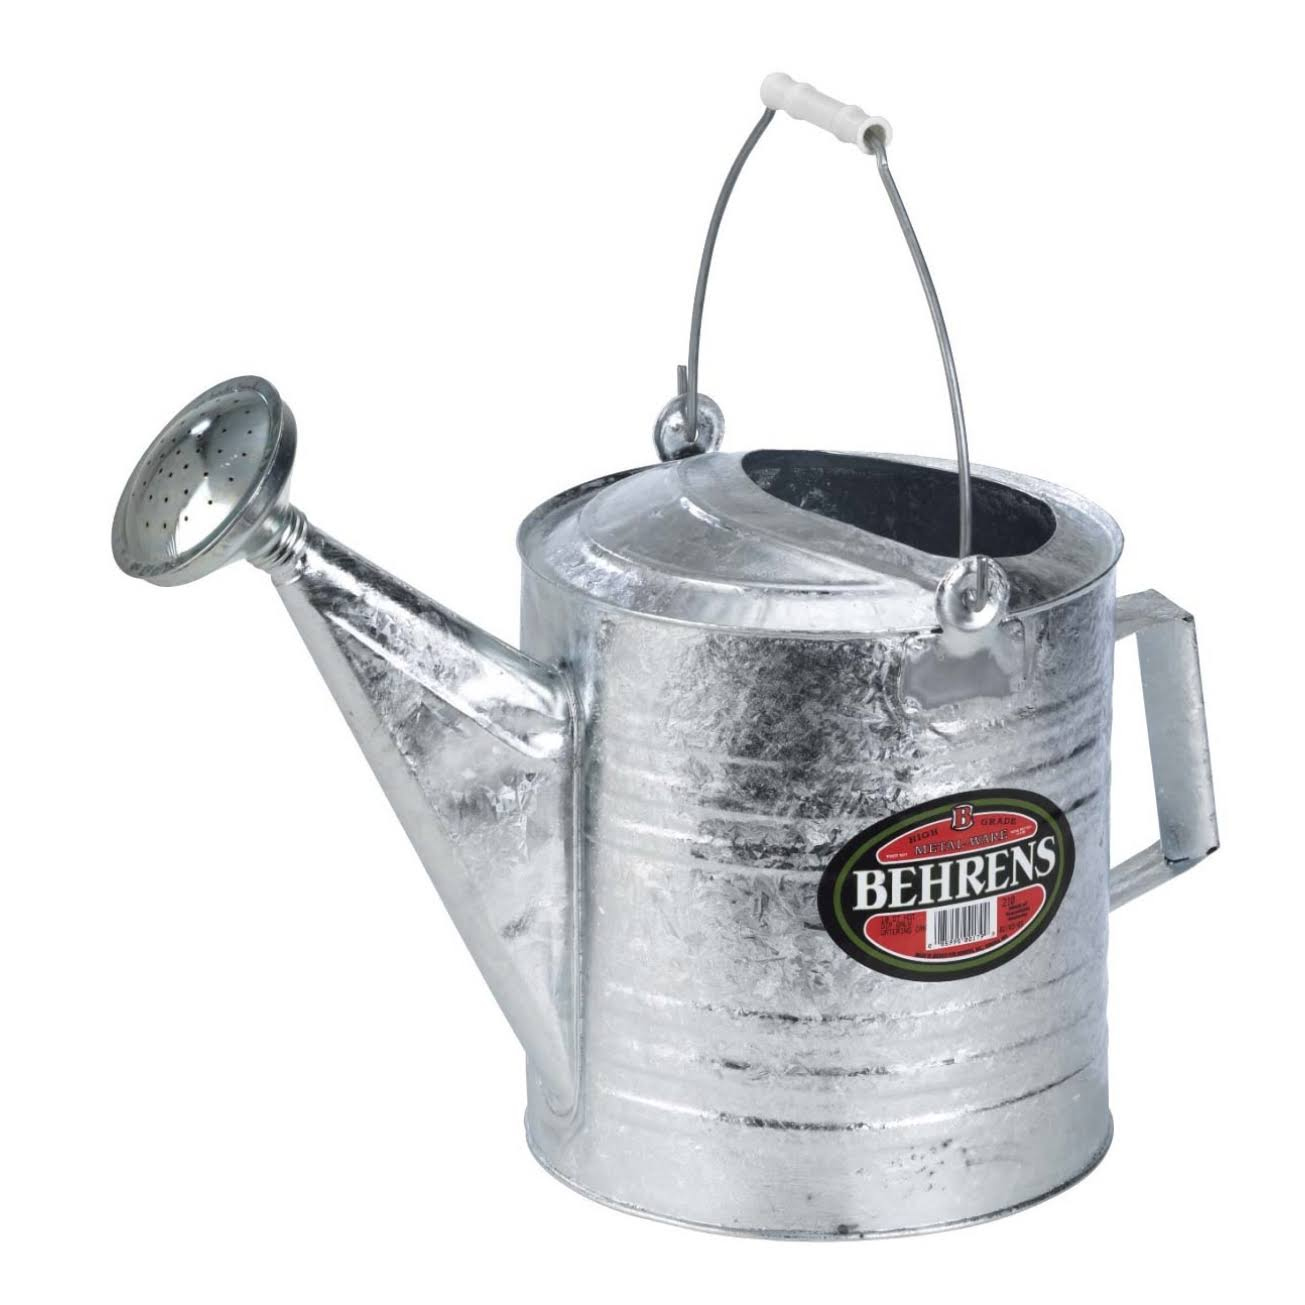 Behrens Watering Can - Steel, 7.57l